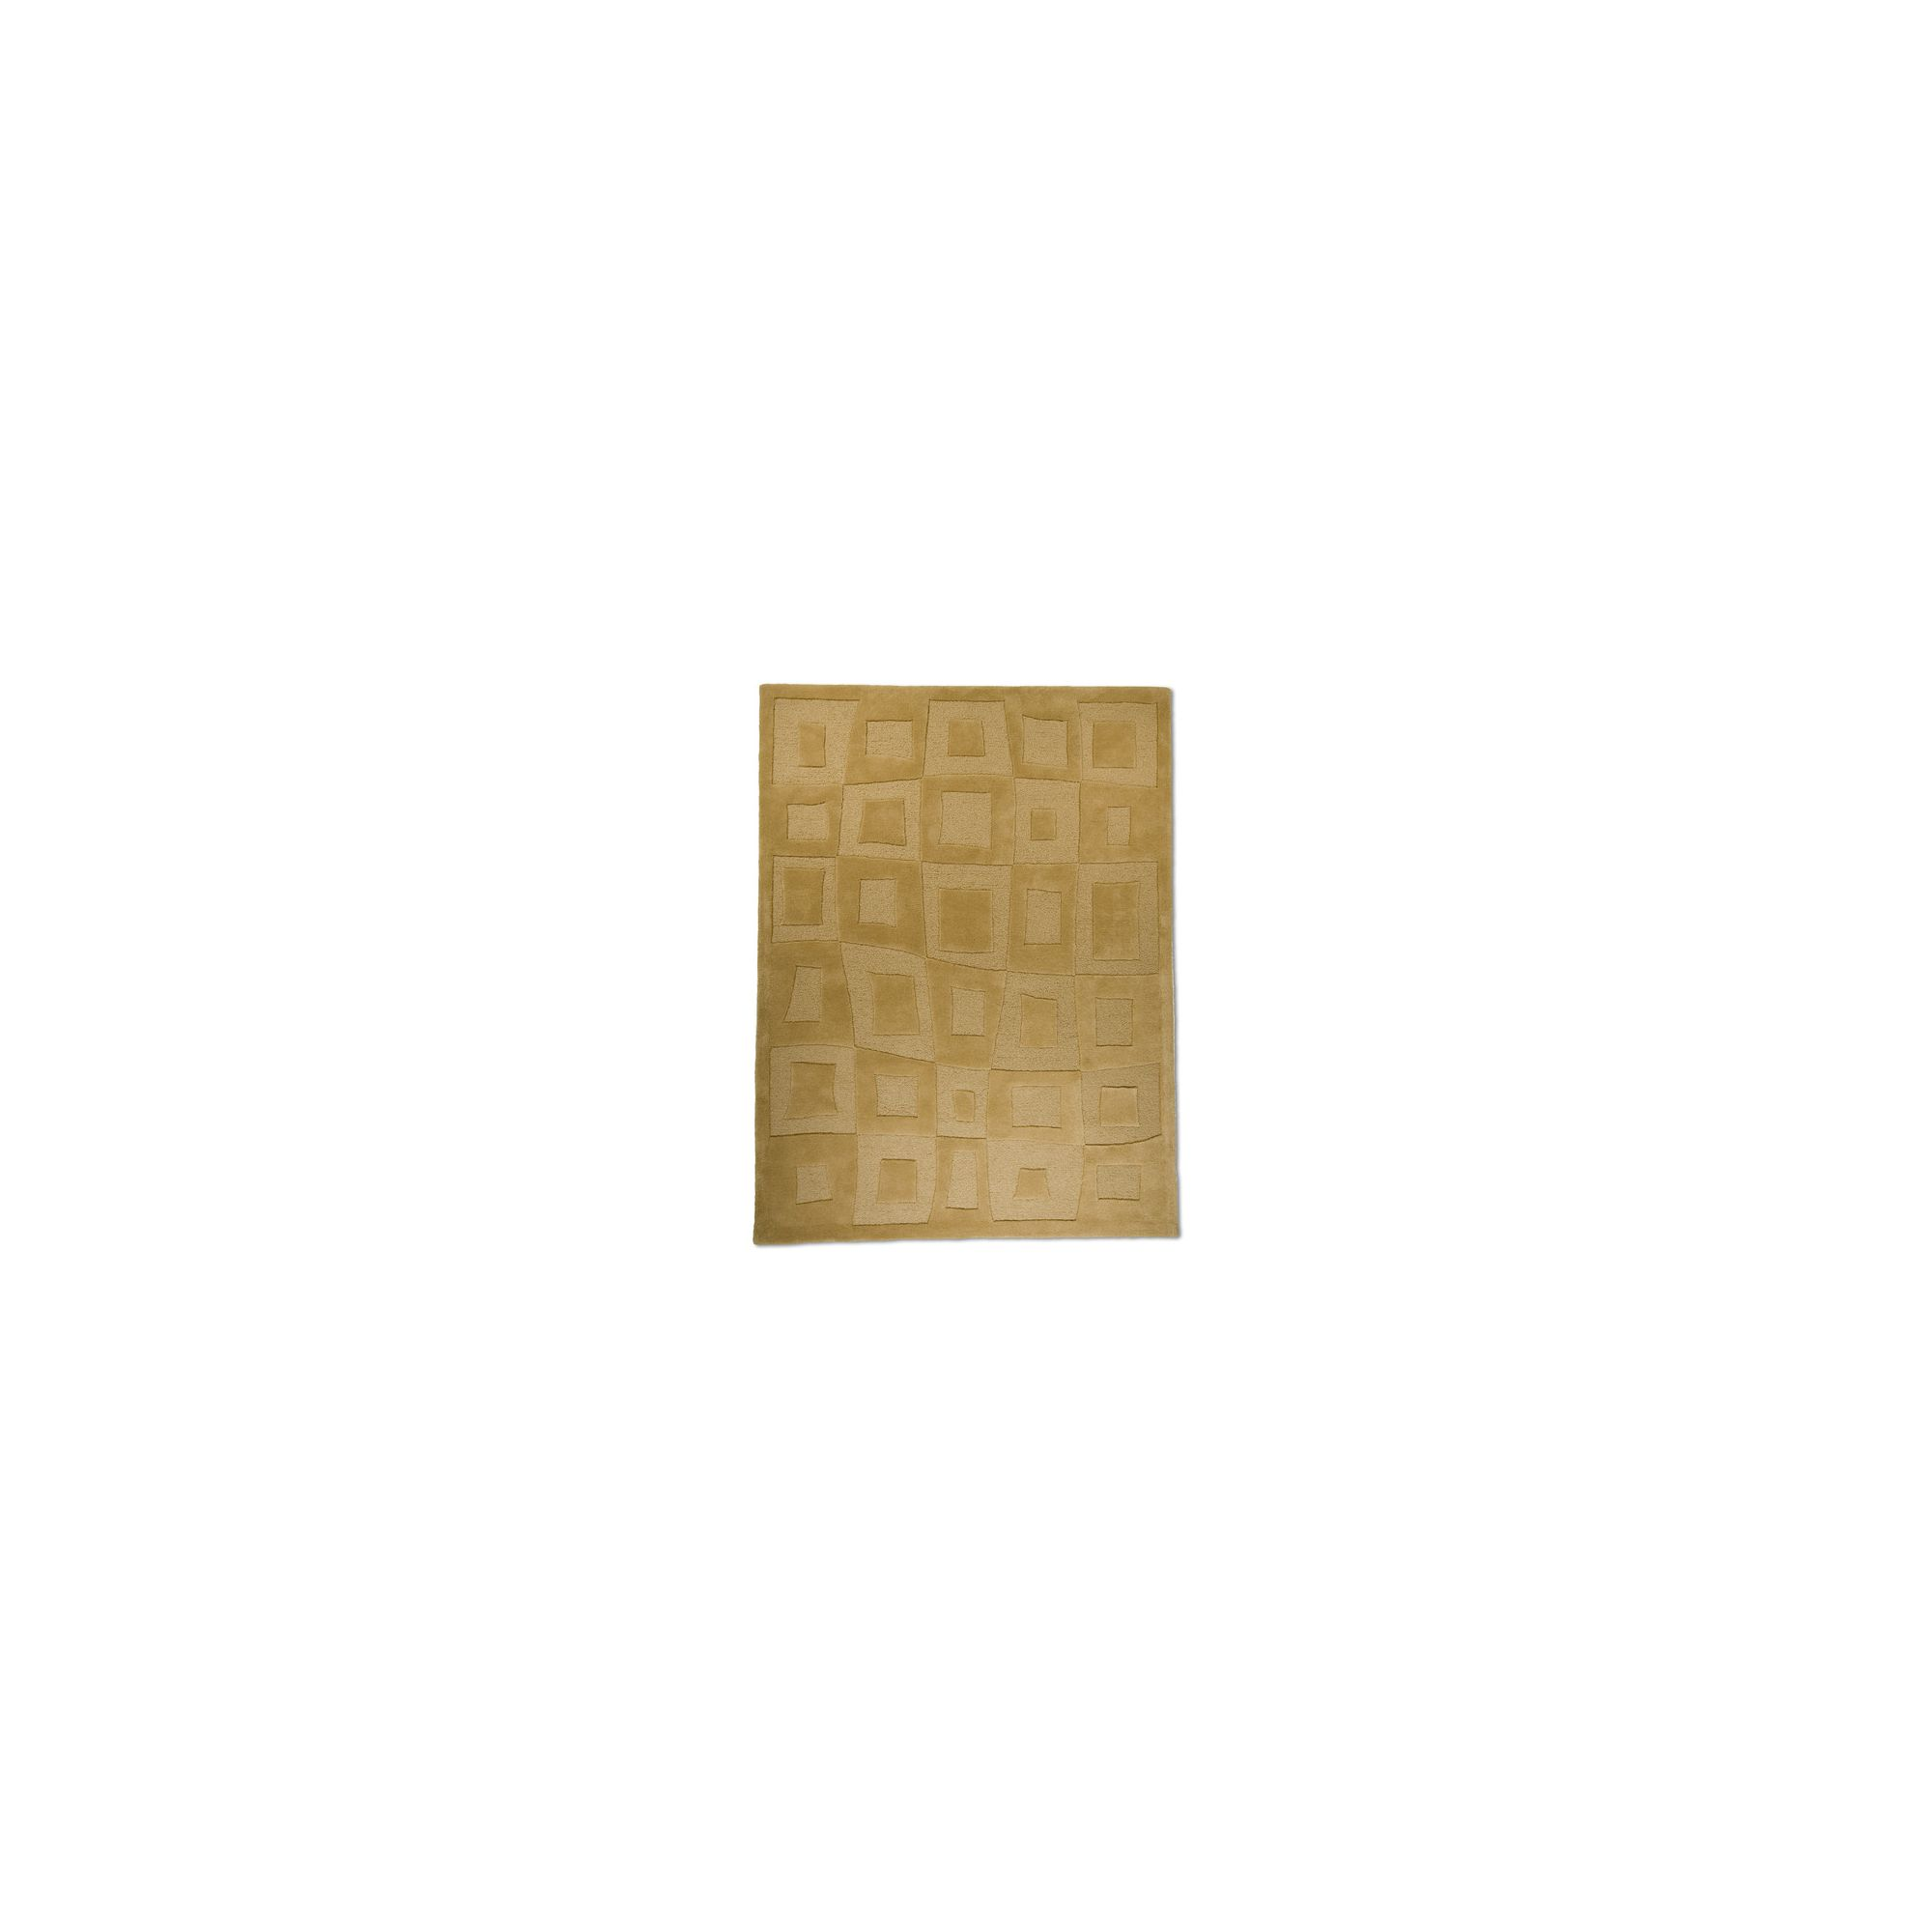 Anna V Rugs Cubist Contemporary Rectangular Rug - 180cm x 240cm at Tesco Direct